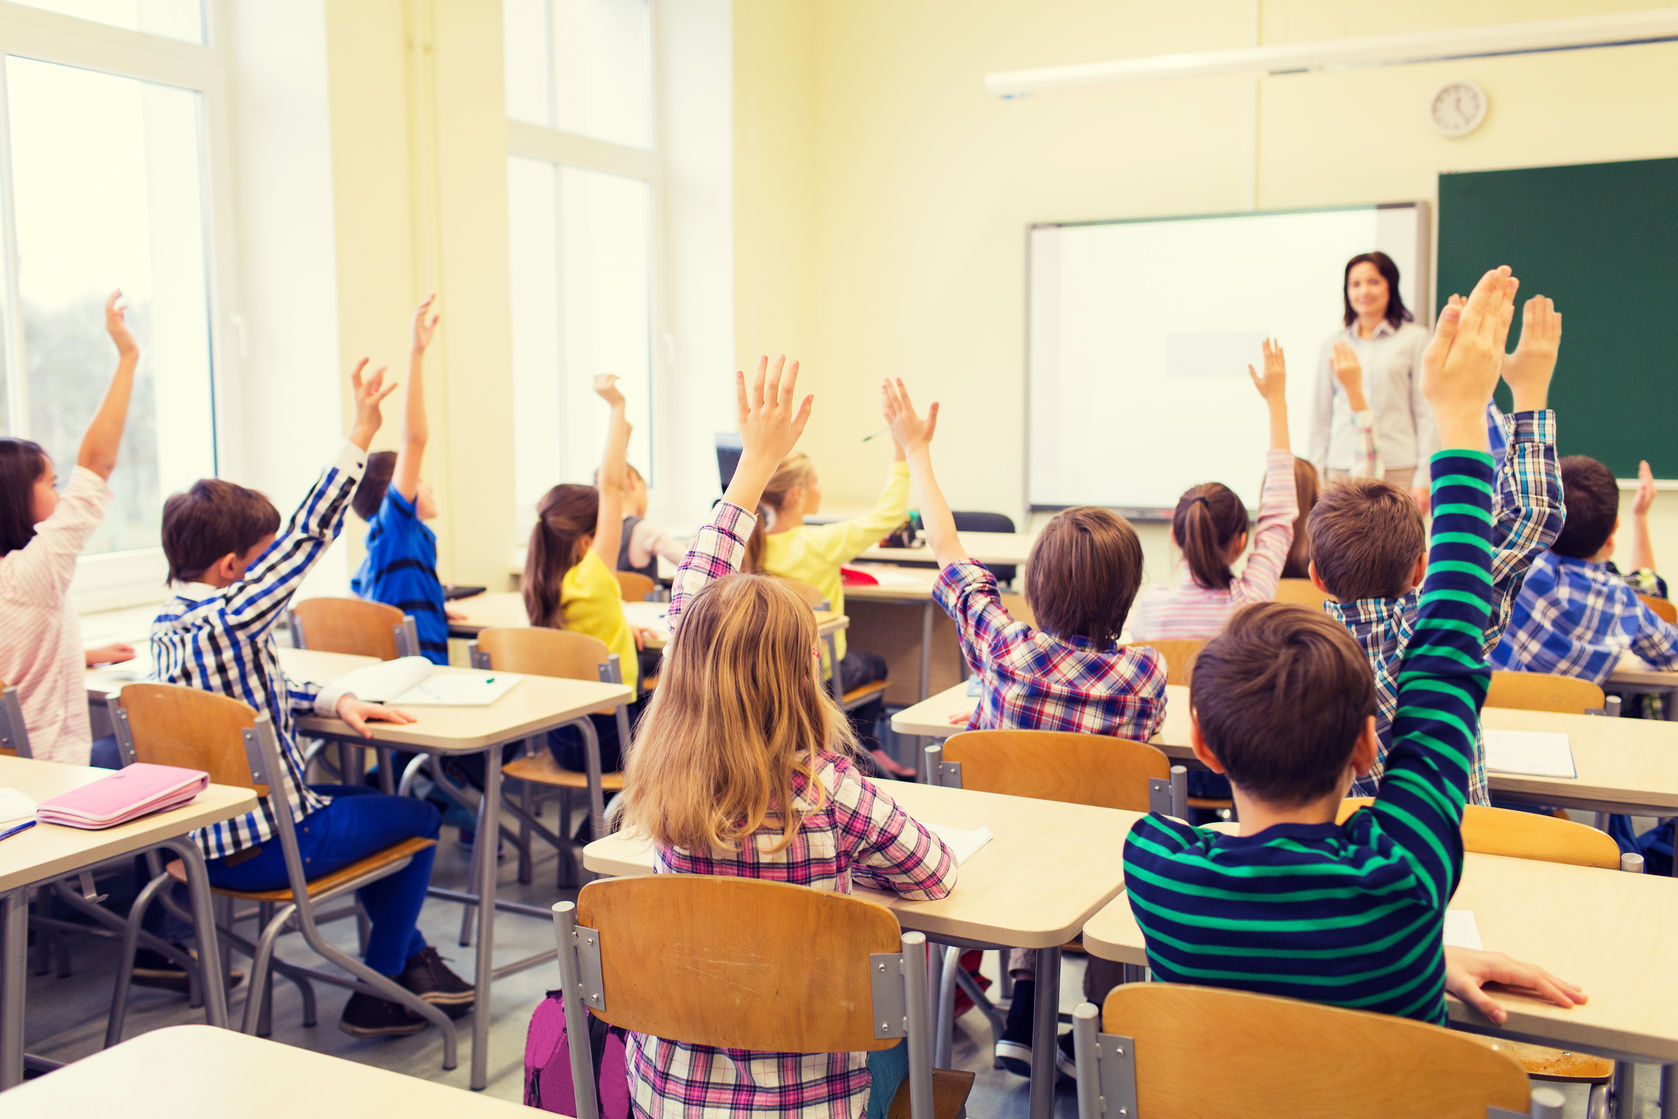 group-of-school-kids-with-teacher-sitting-in-classroom-and-raising-hands.jpg